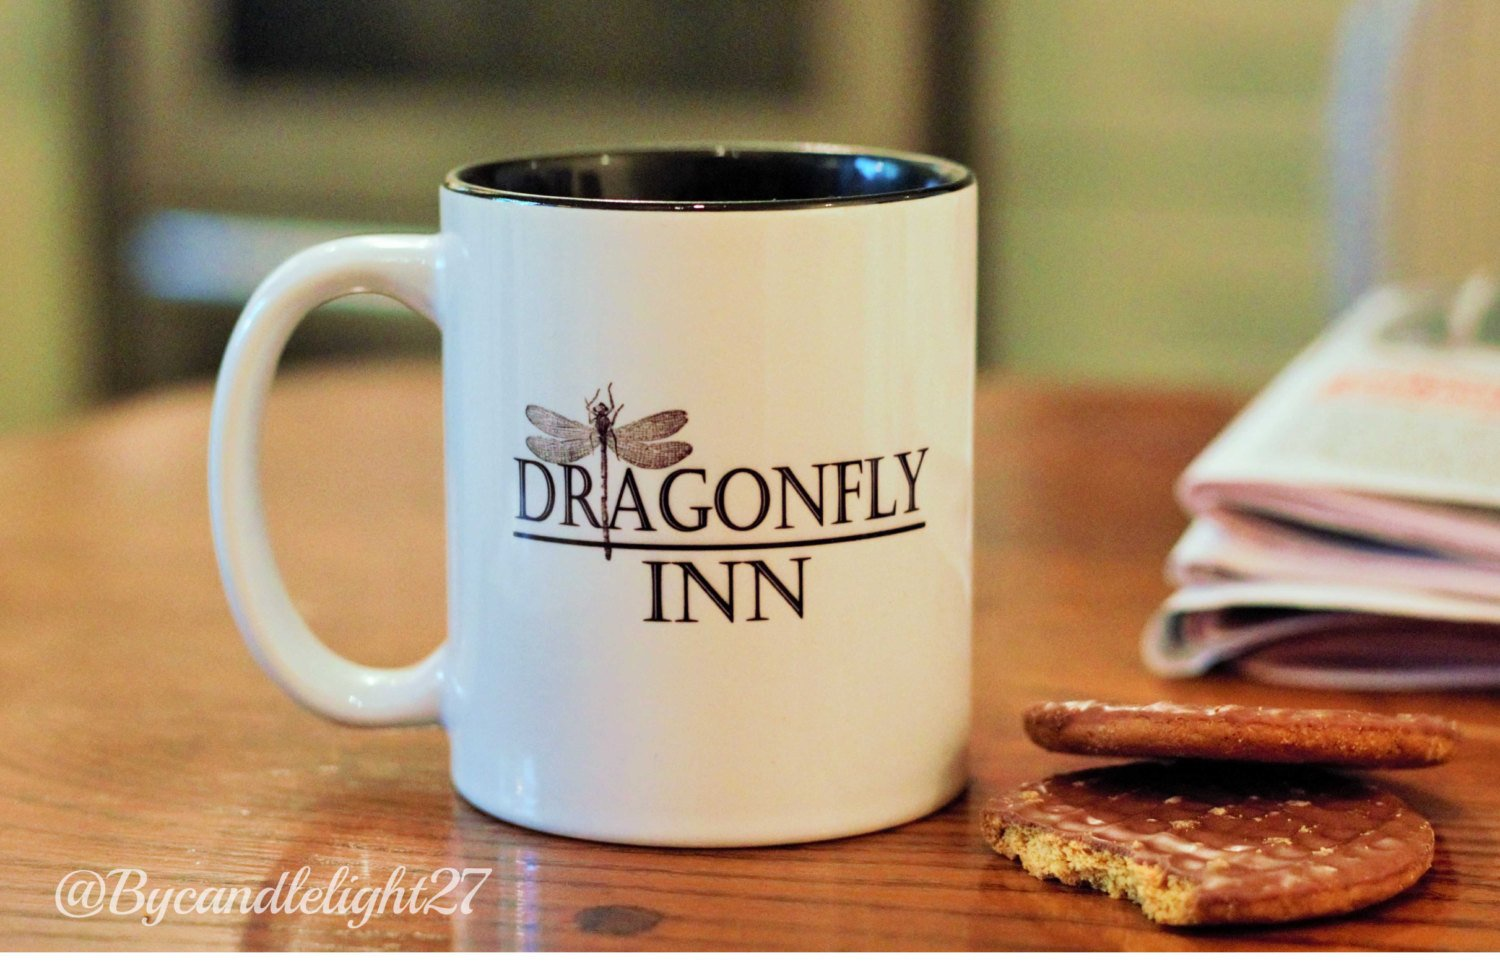 Dragonfly Inn - Stars Hollow - Gilmore Girls -Inspired - Hand Crafted Cup - ByCandlelight27